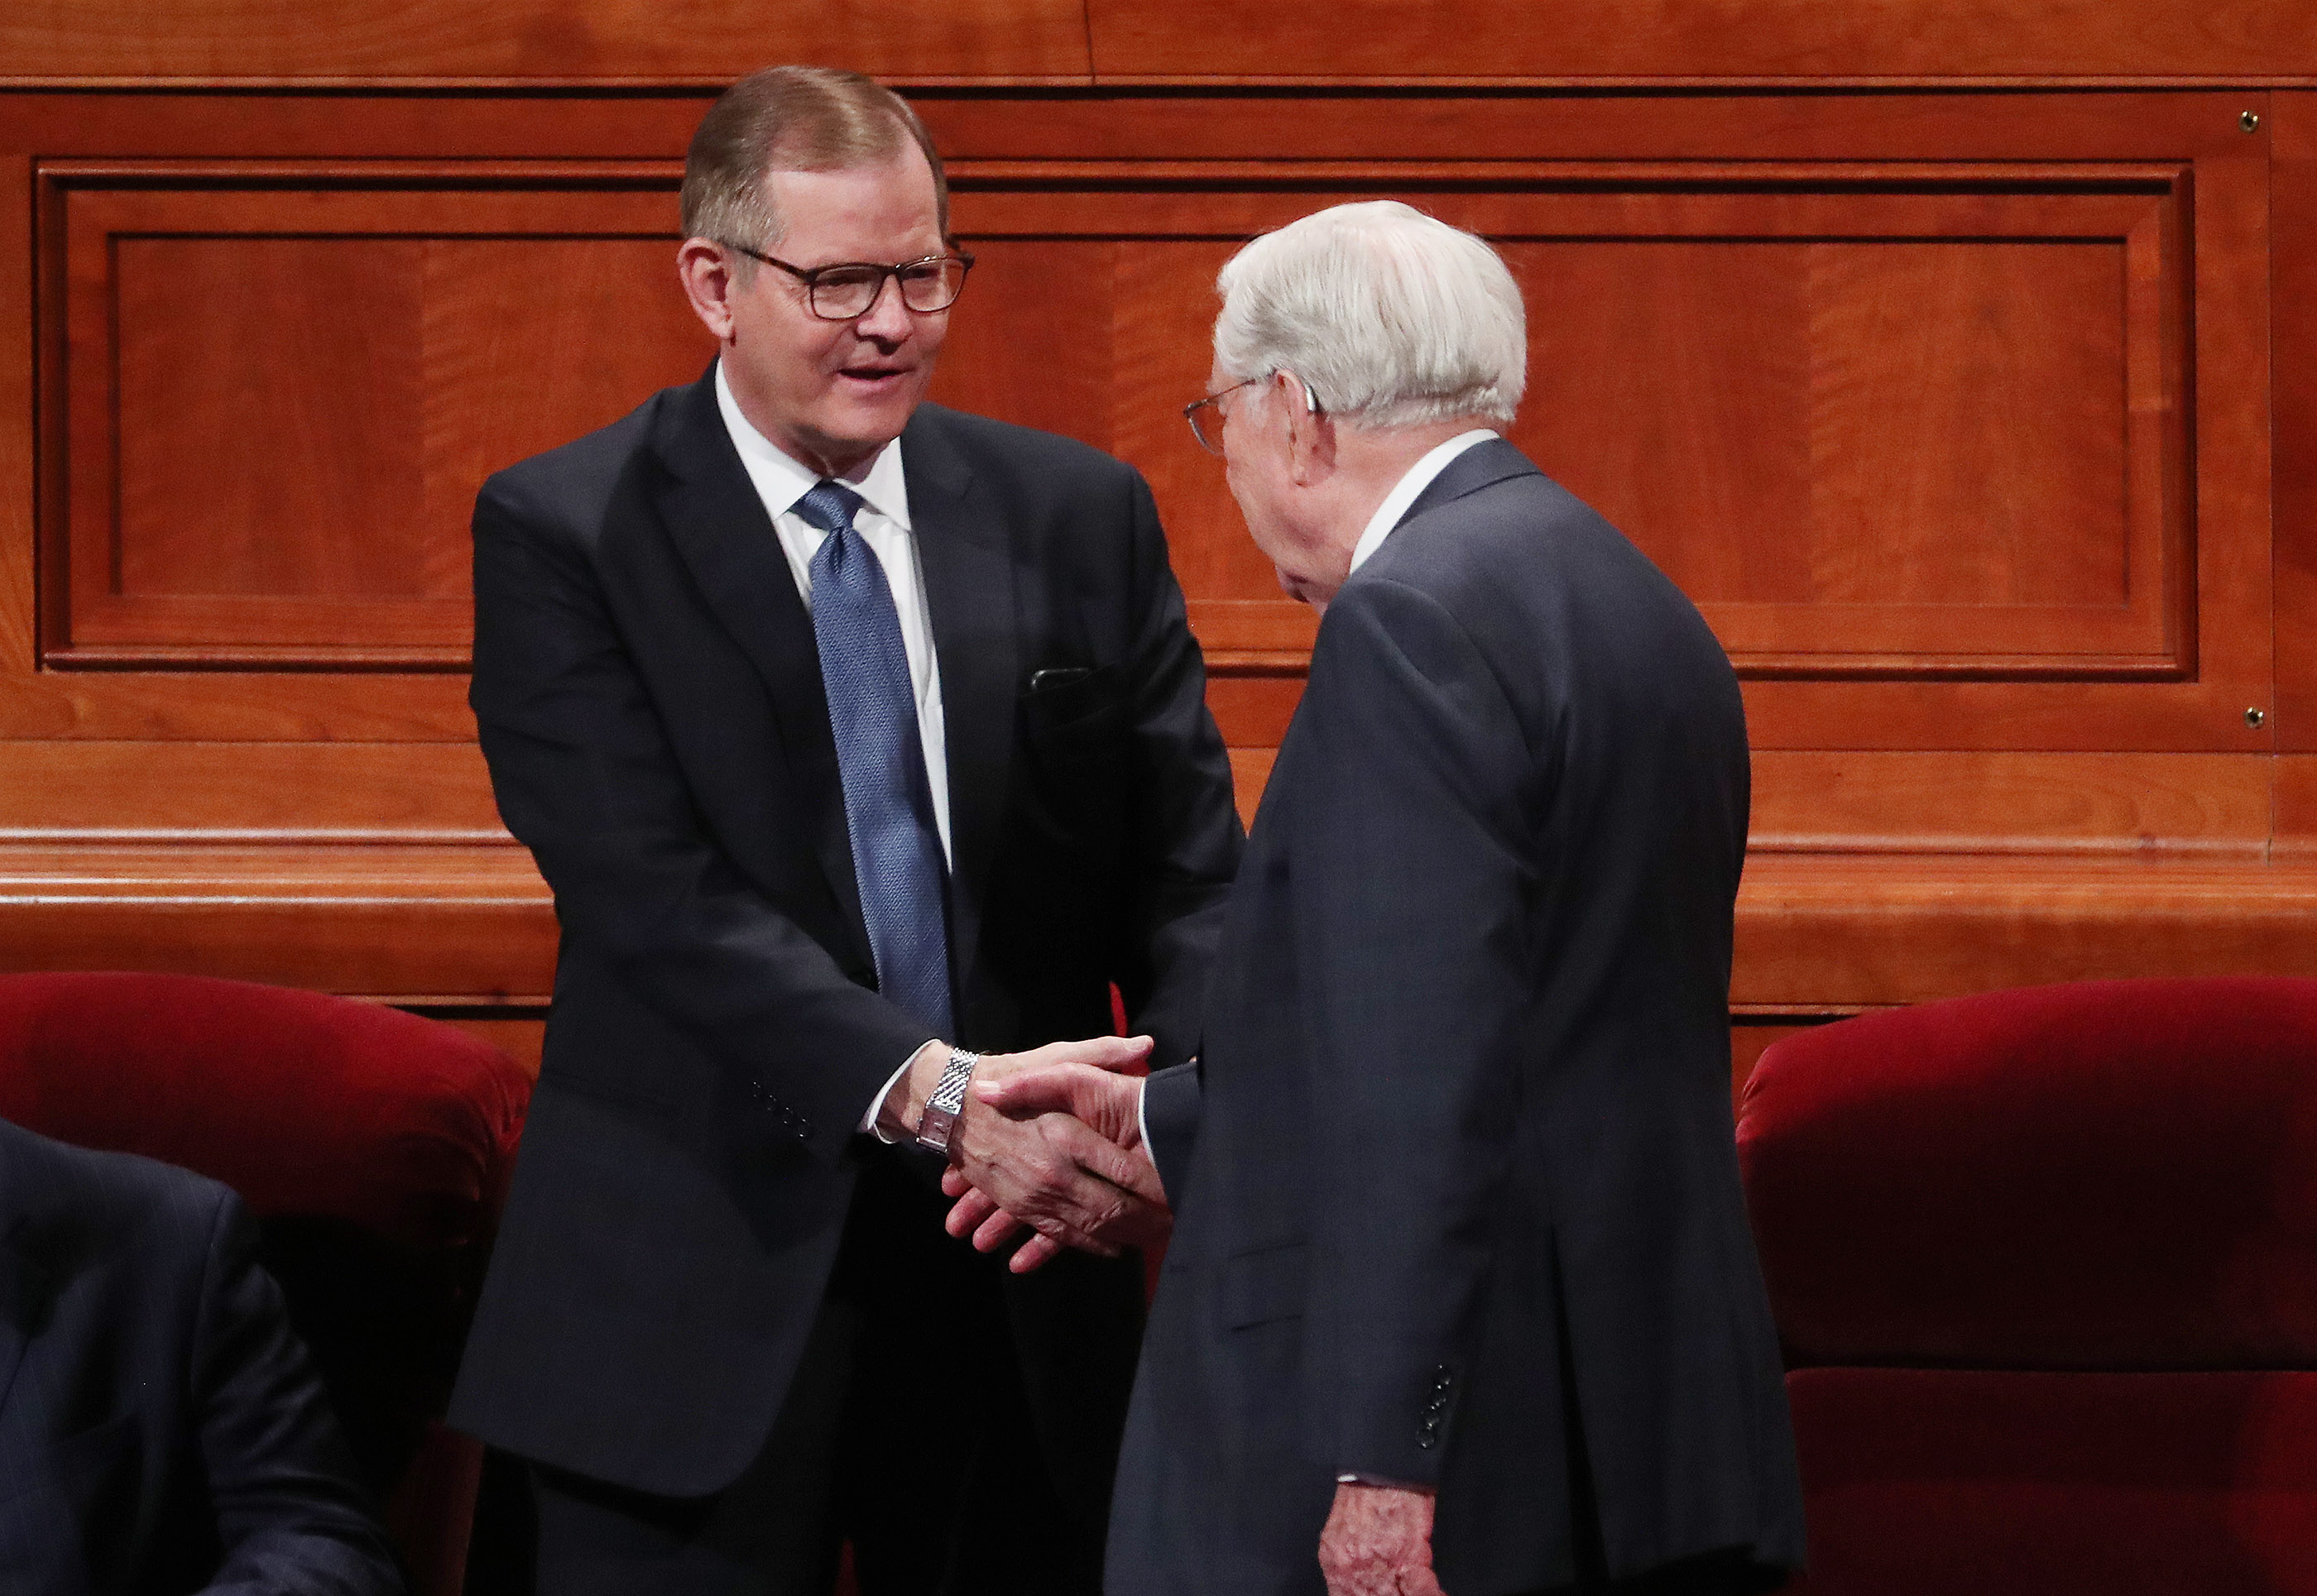 Elder Gary E. Stevenson talks with President M. Russell Ballard, acting president of the Quorum of the Twelve Apostles of The Church of Jesus Christ of Latter-day Saints, prior to the 189th Annual General Conference of The Church of Jesus Christ of Latter-day Saints in Salt Lake City on Saturday, April 6, 2019.